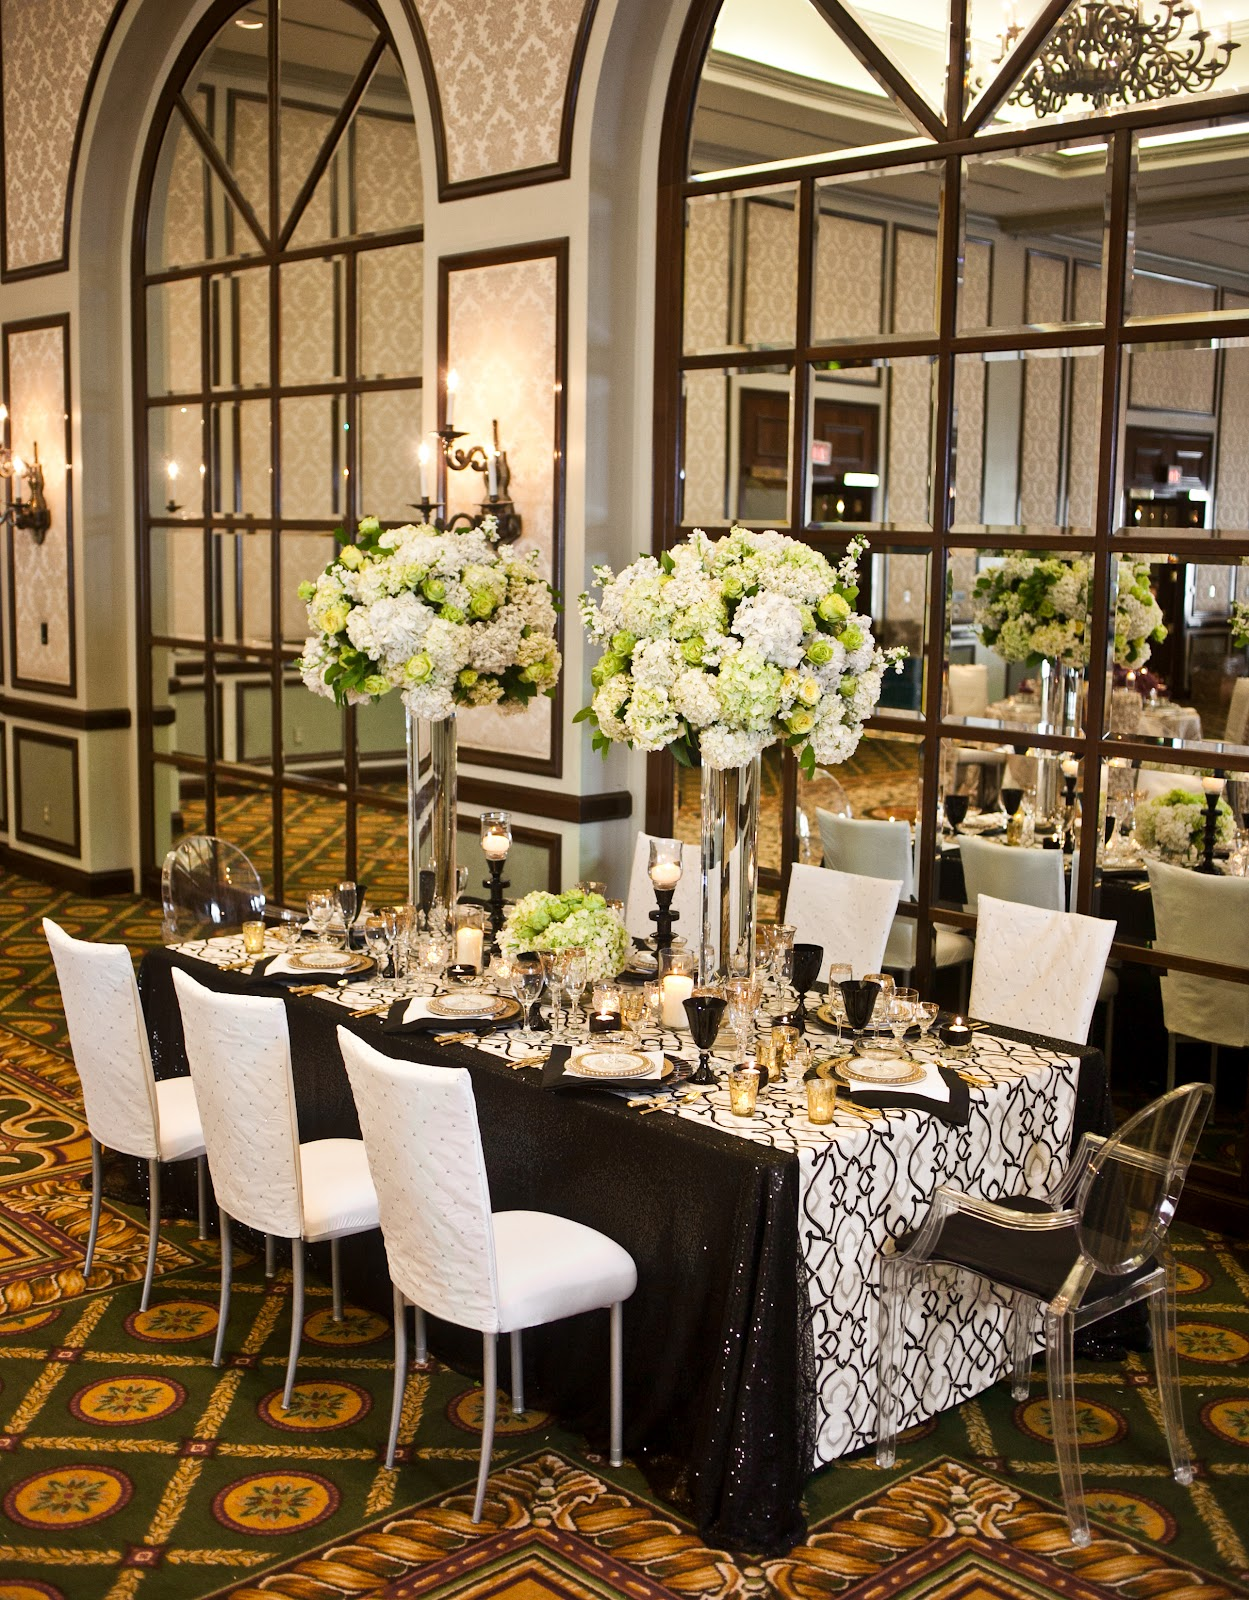 Wedding Reception Table Decor It Will Help You Gather Some